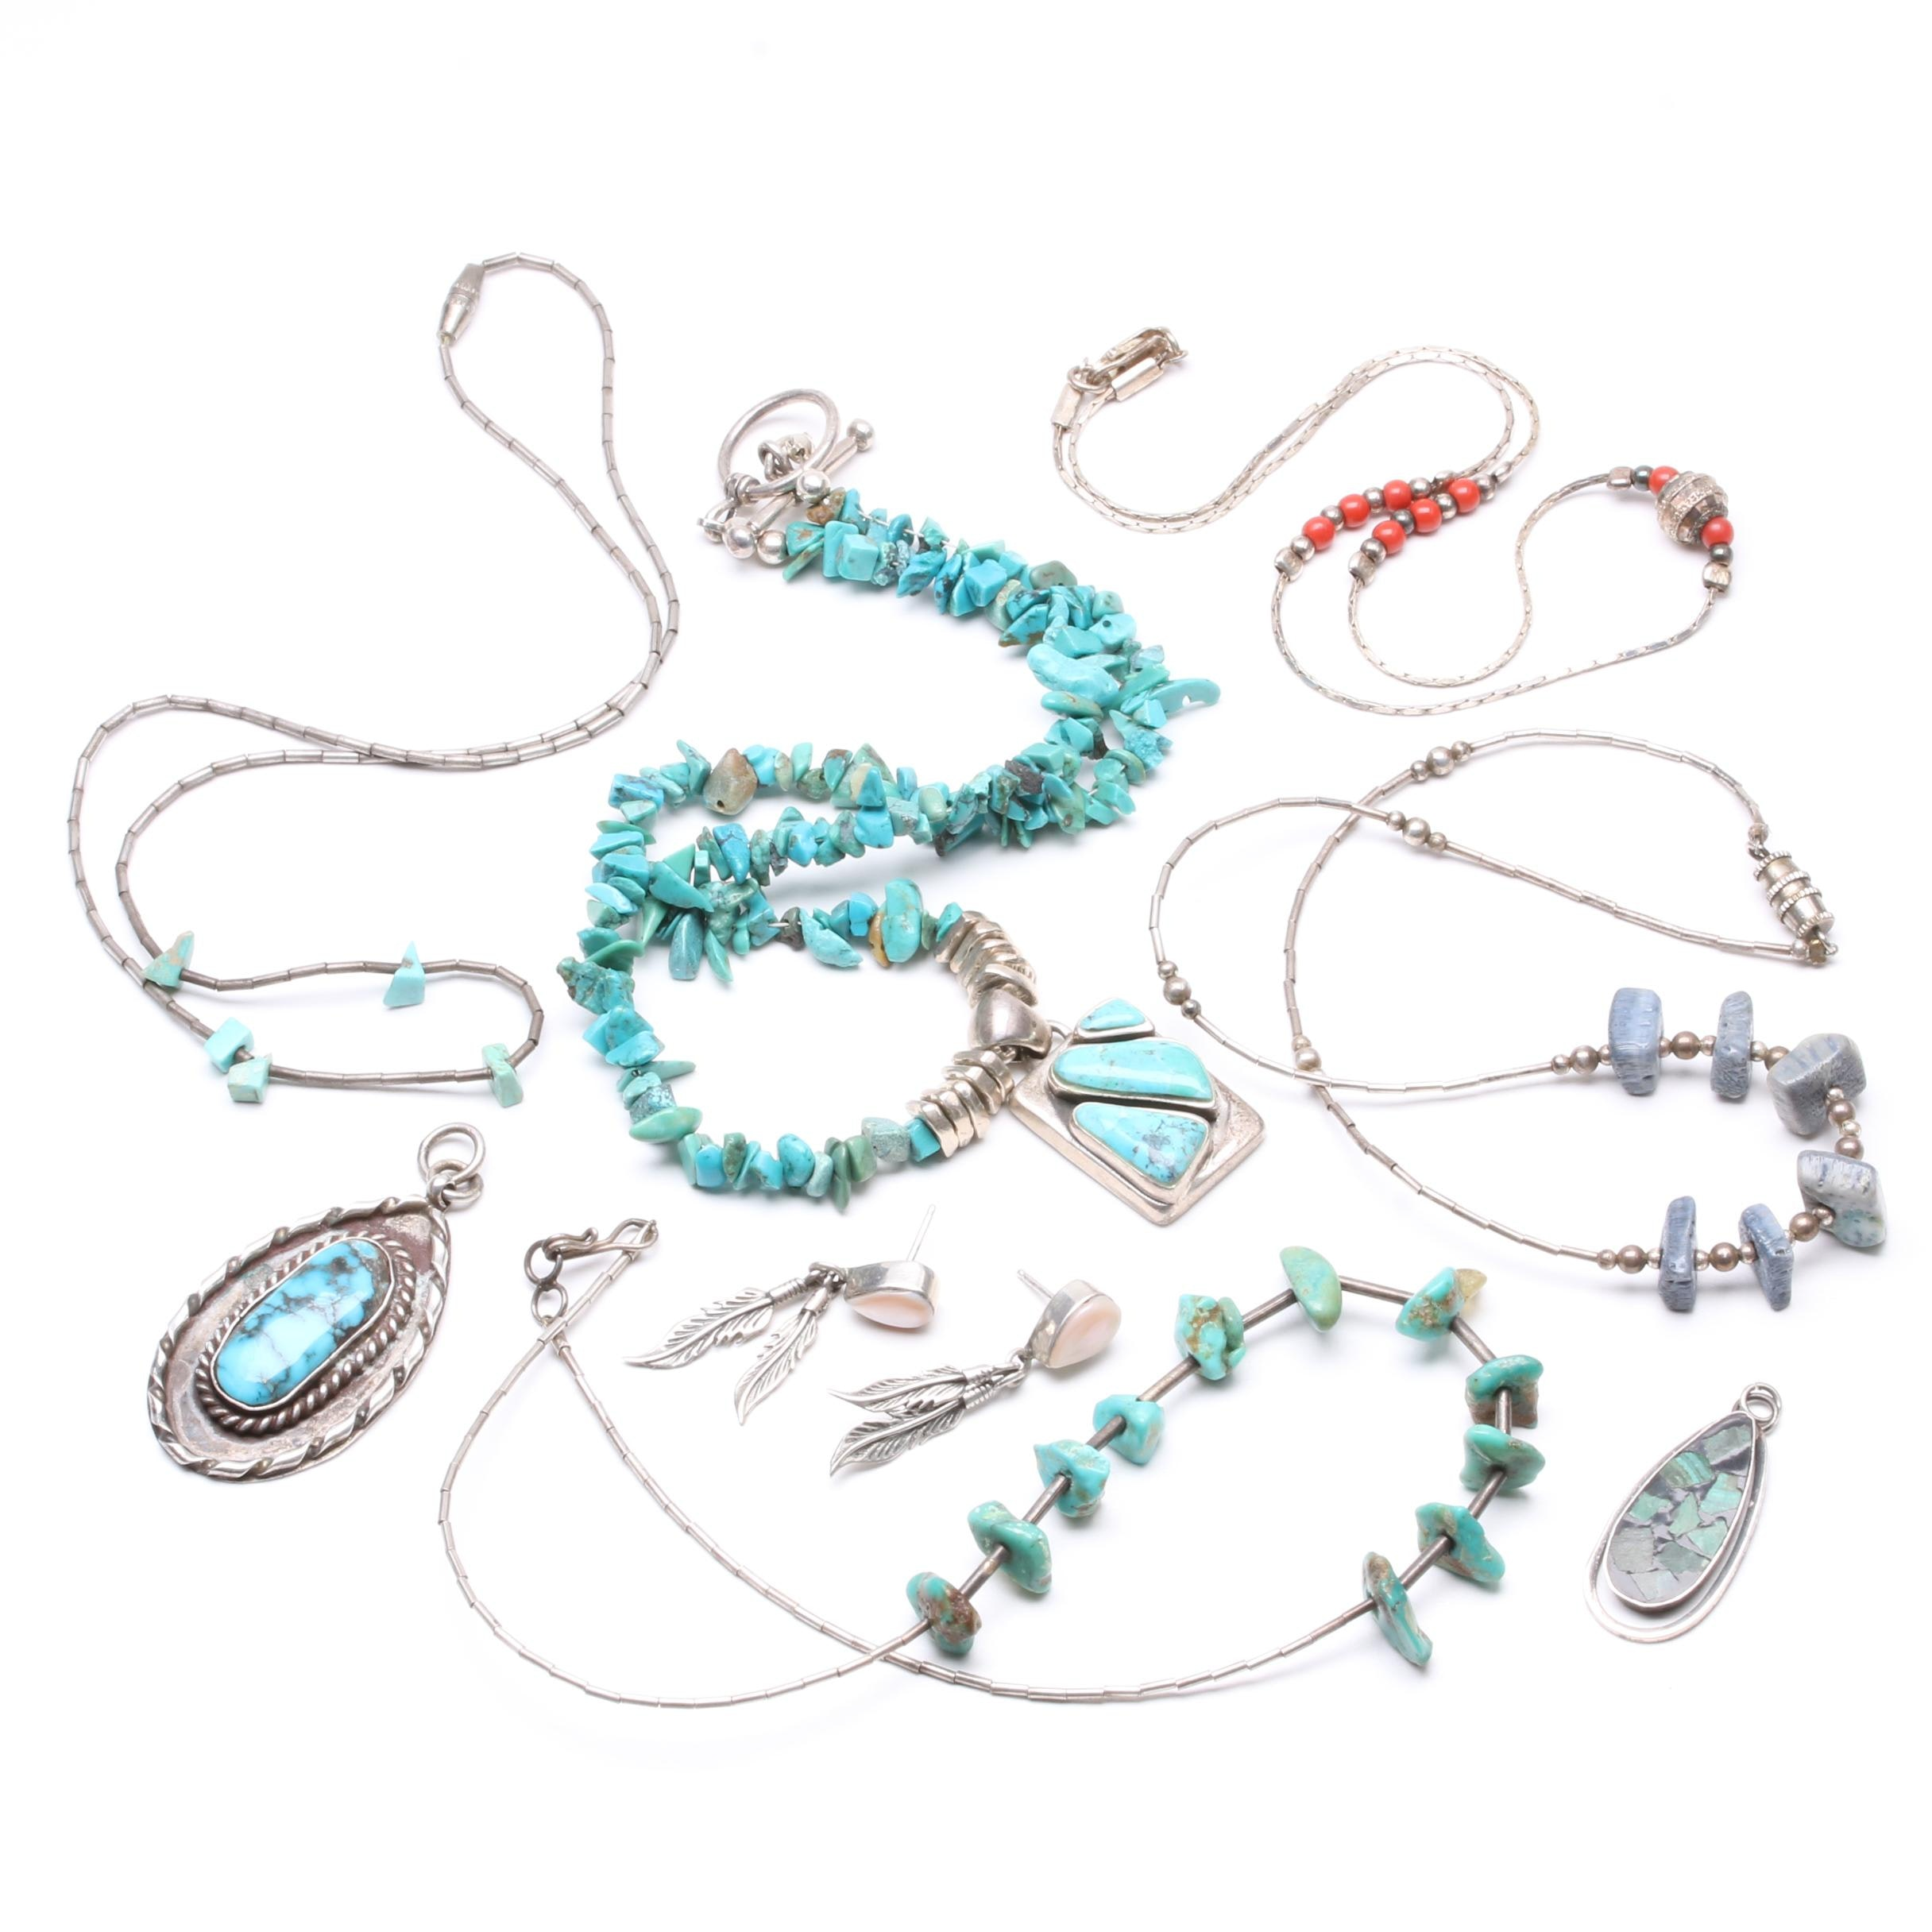 Southwestern Style Sterling Silver Turquoise and Coral Jewelry Assortment